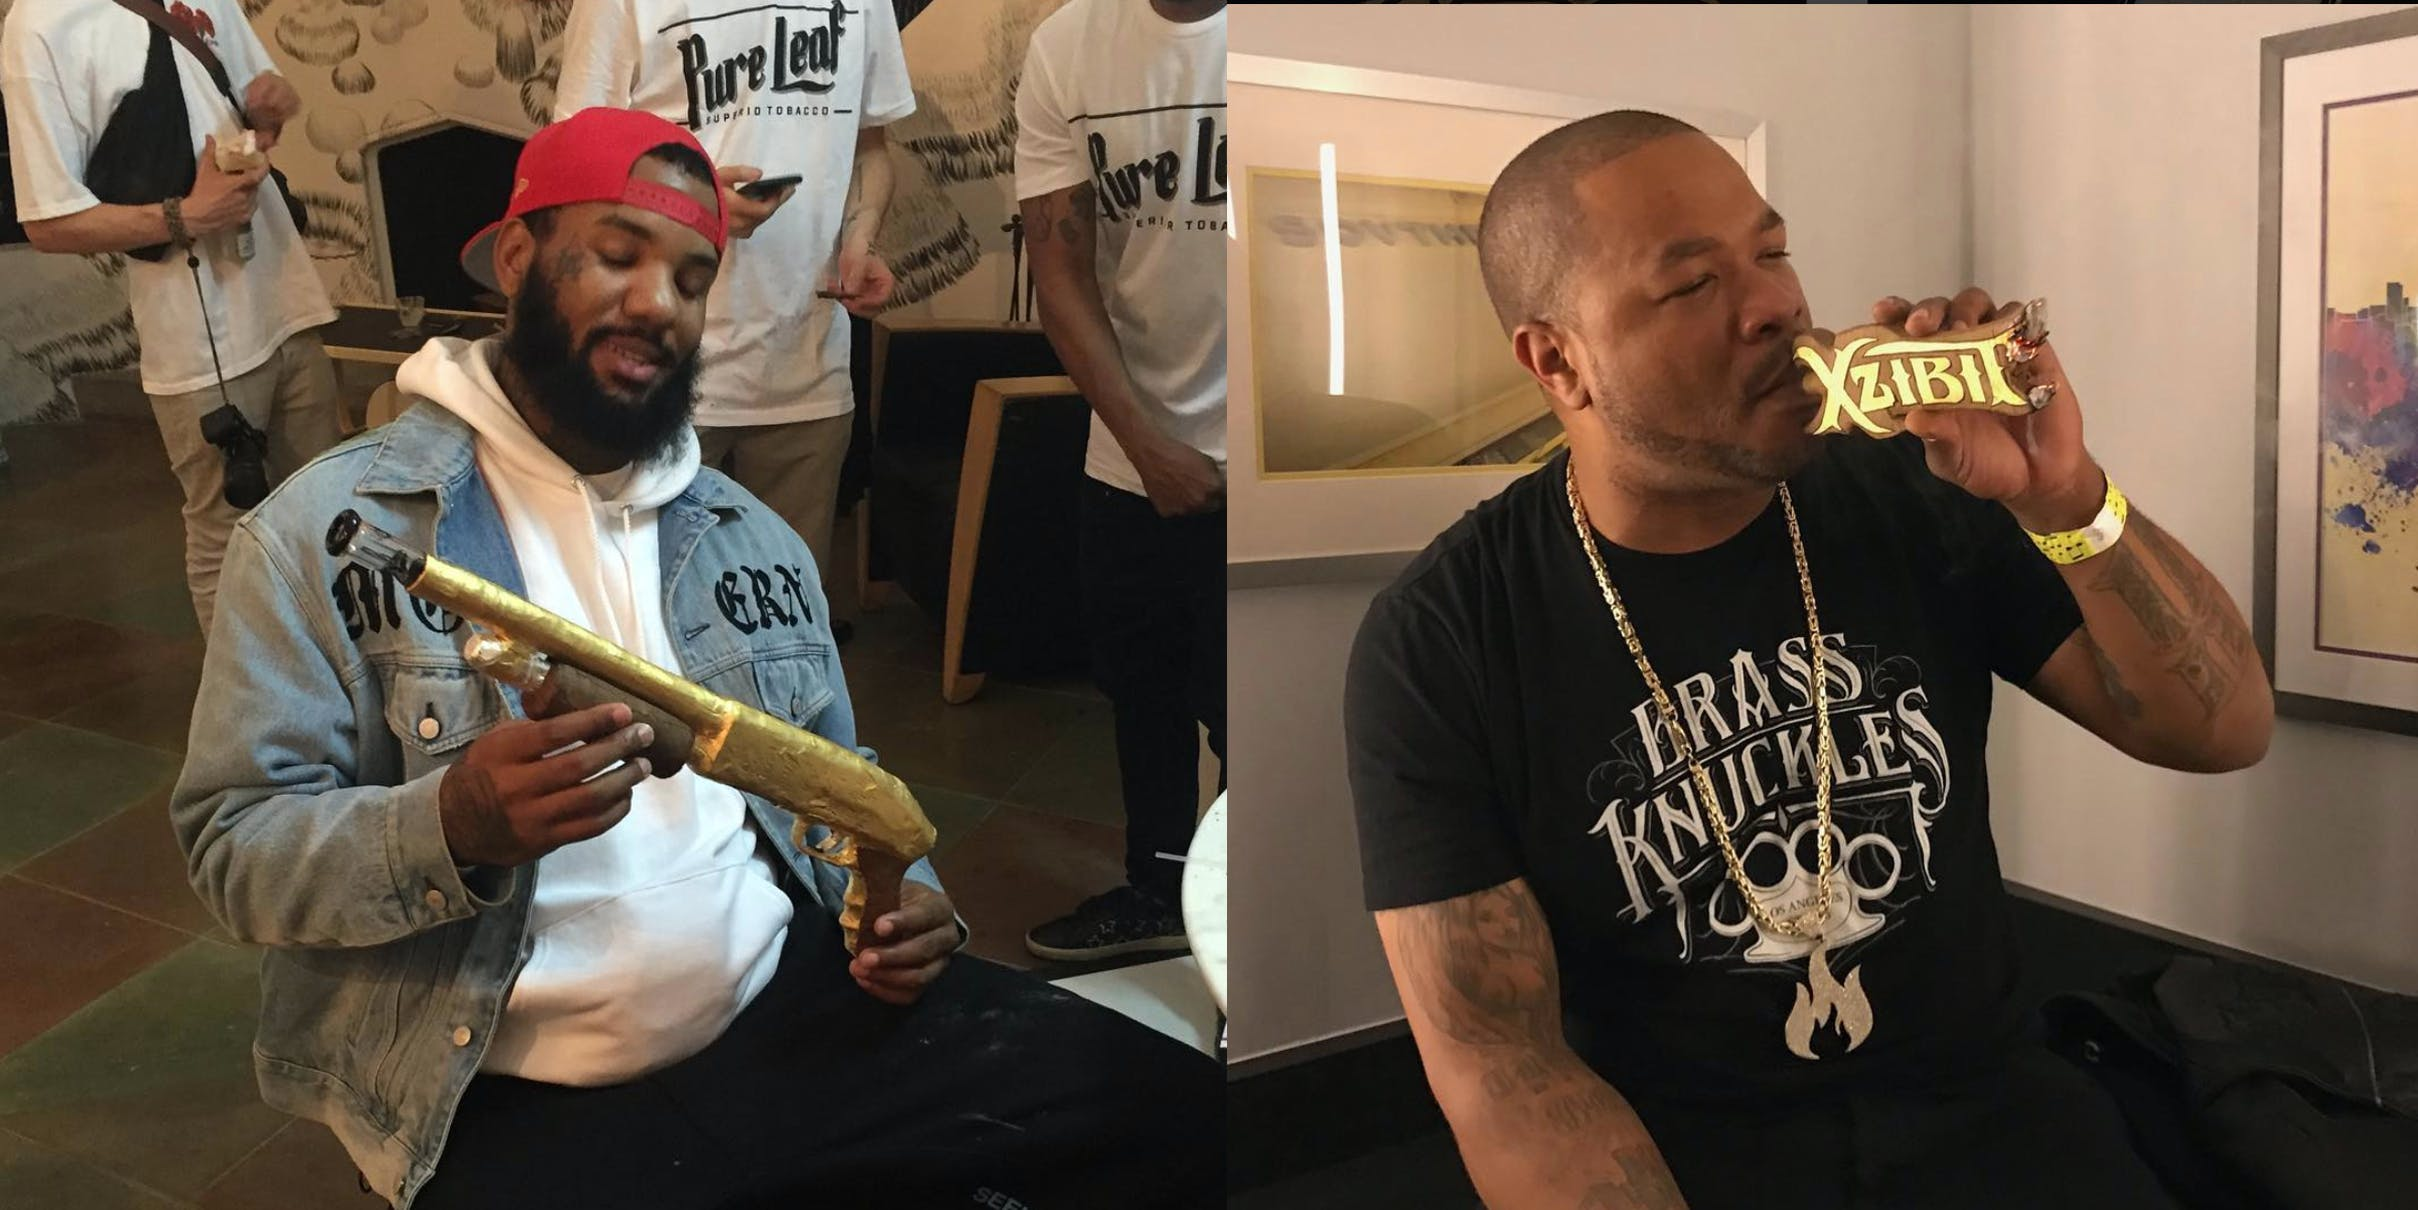 Xibit and famous rappers smoke blunts made by an instagram celebrity